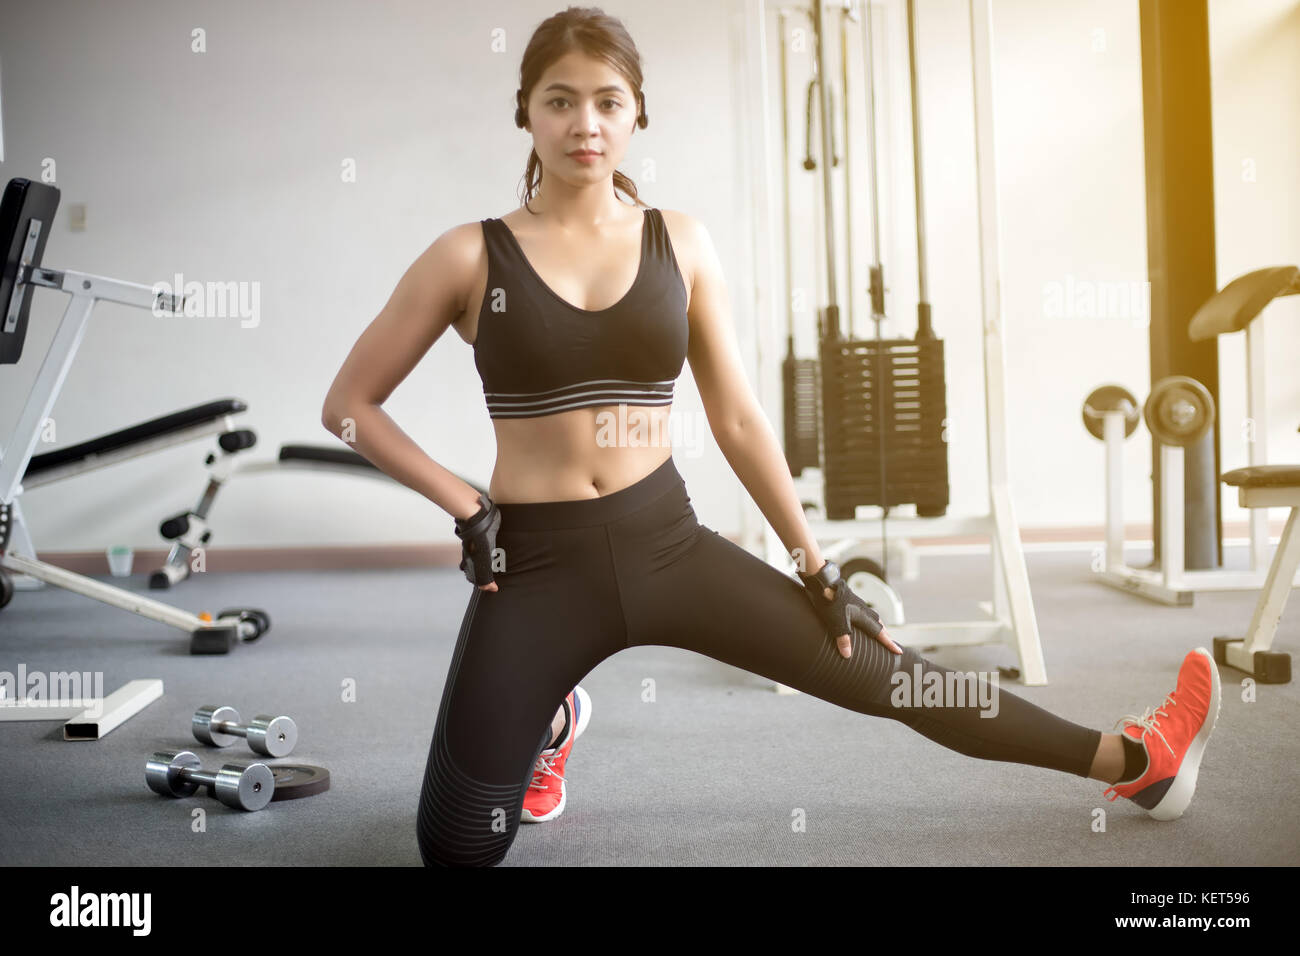 Blurry of beautiful muscular fit woman exercising building muscles and fitness woman doing exercises in the gym. - Stock Image